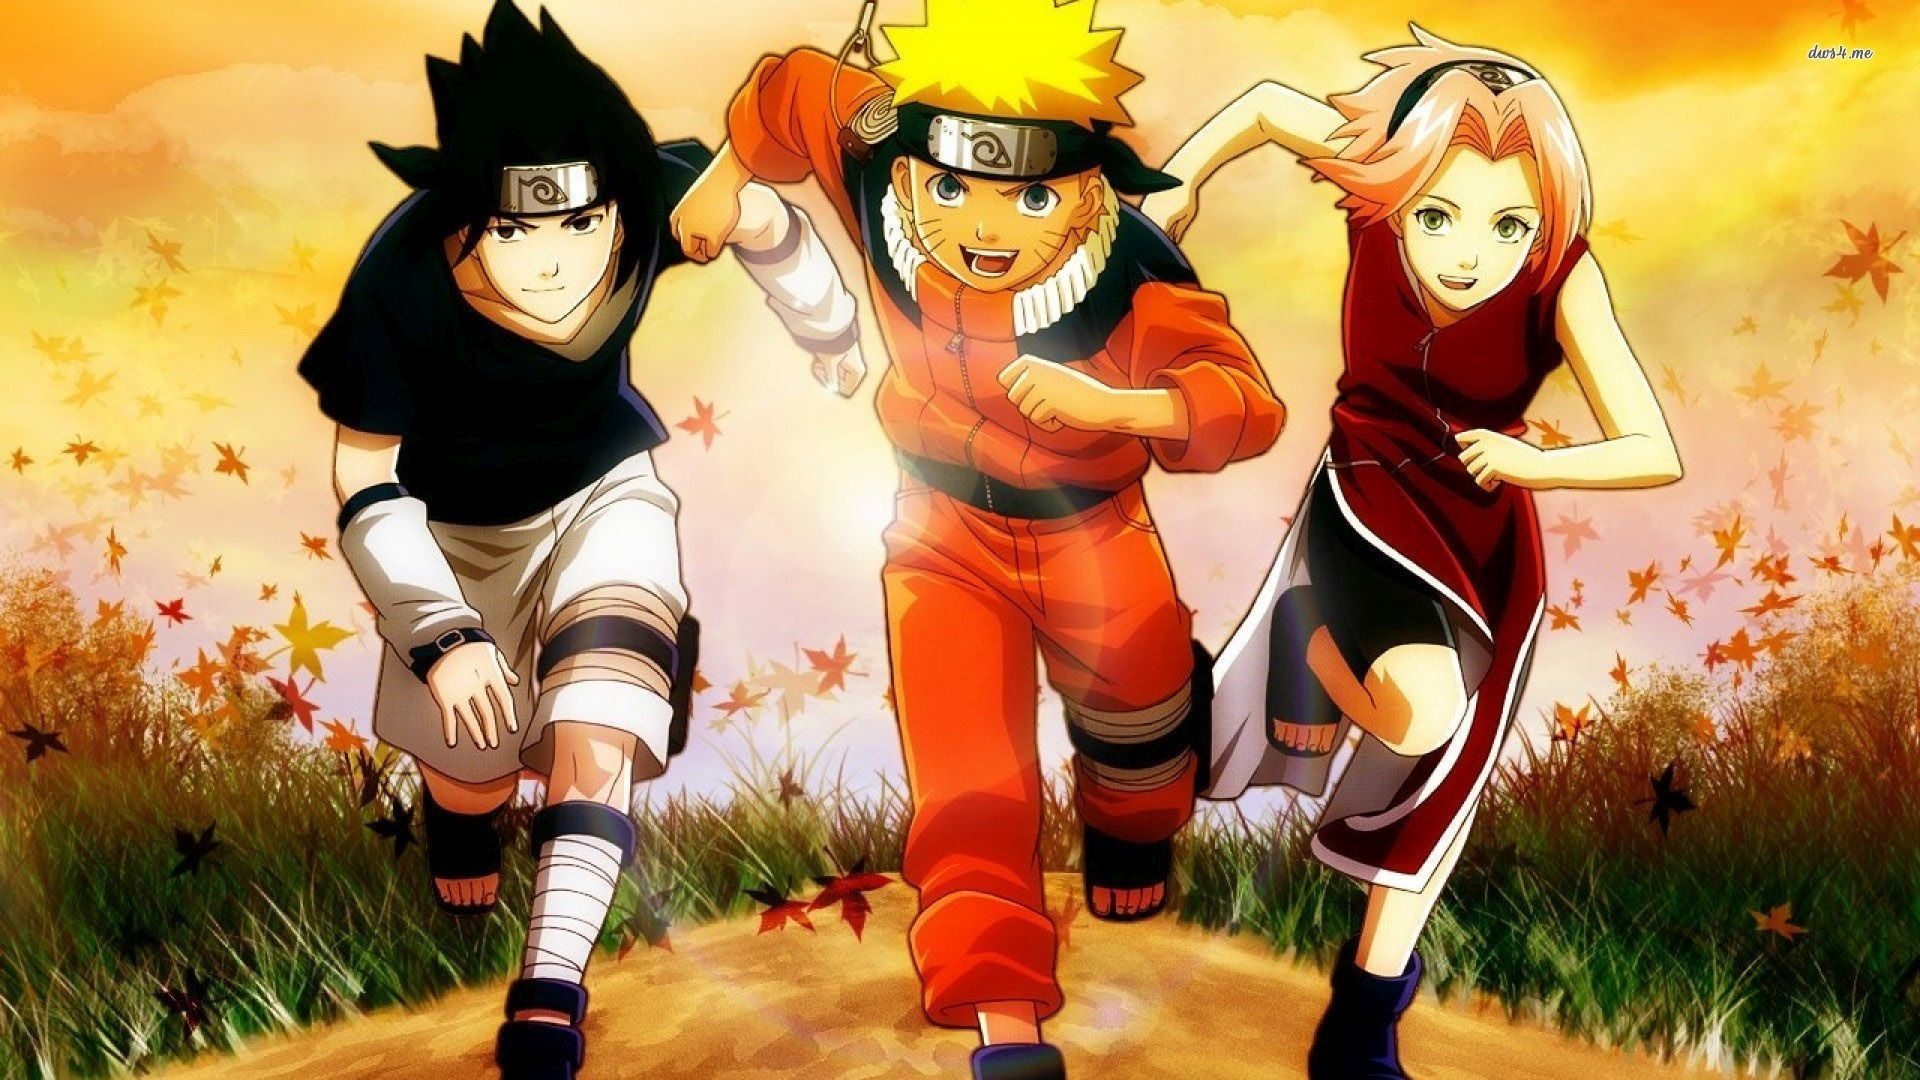 Top Wallpaper Naruto 1080p - hdq-naruto-wallpapers-and-pictures-for-desktop-and-mobile  Picture_99254.jpg